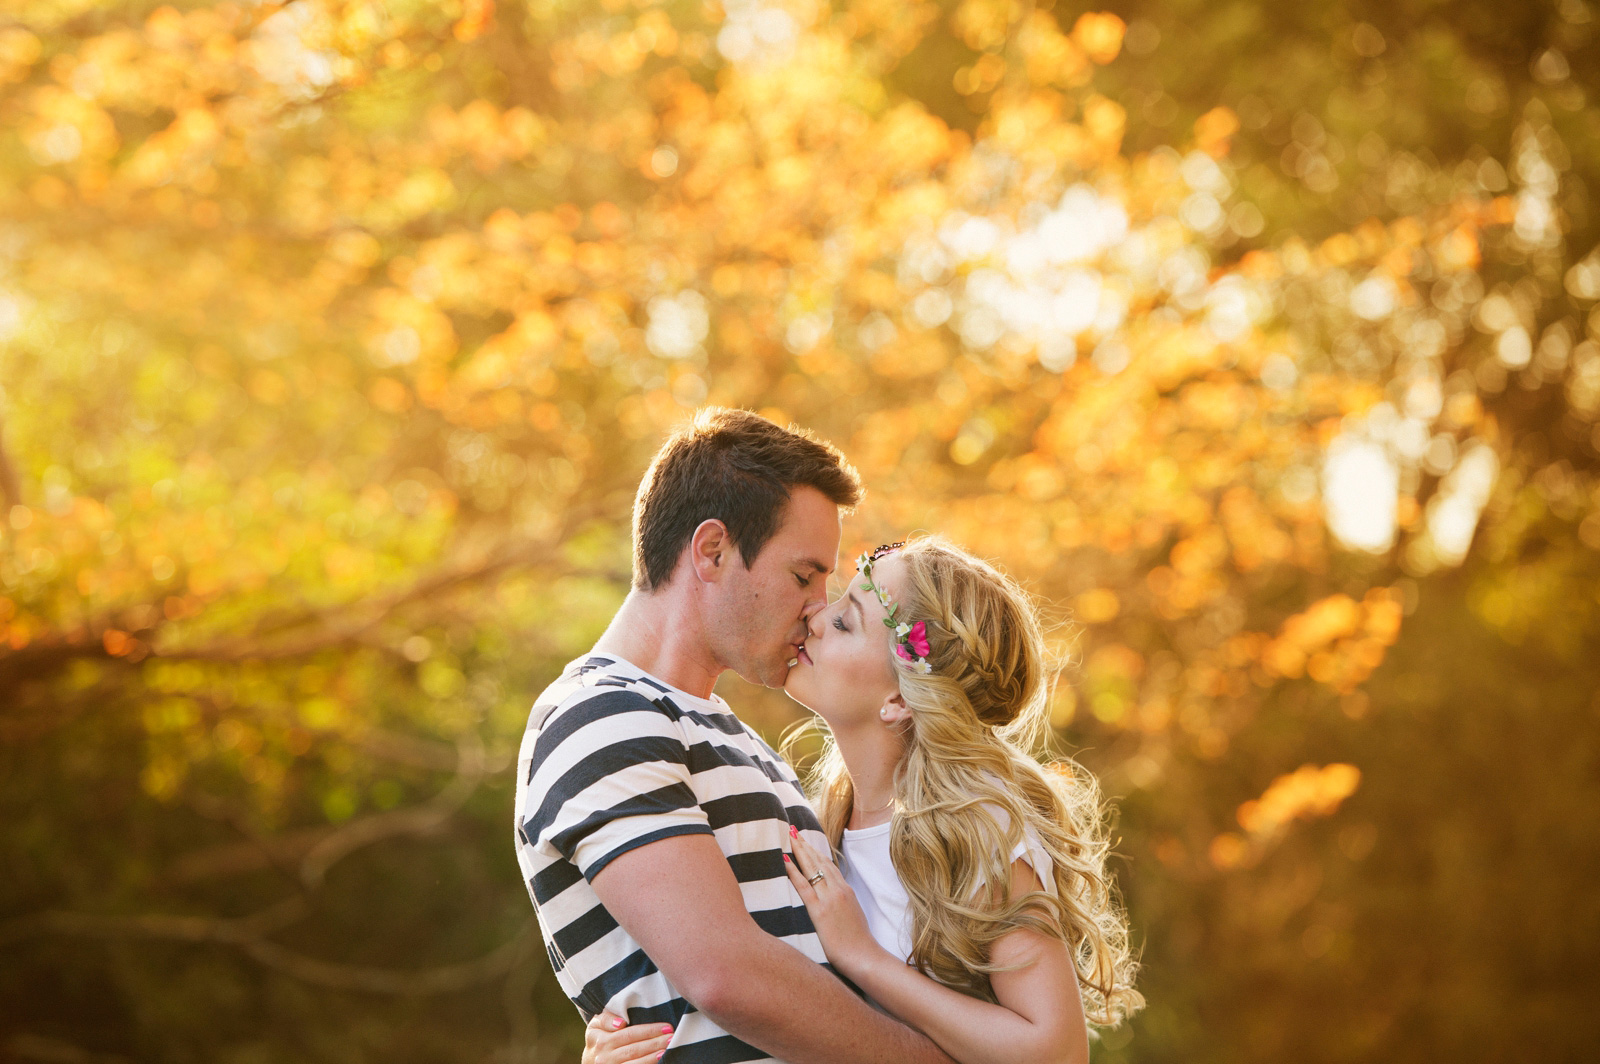 Couple kissing in golden light